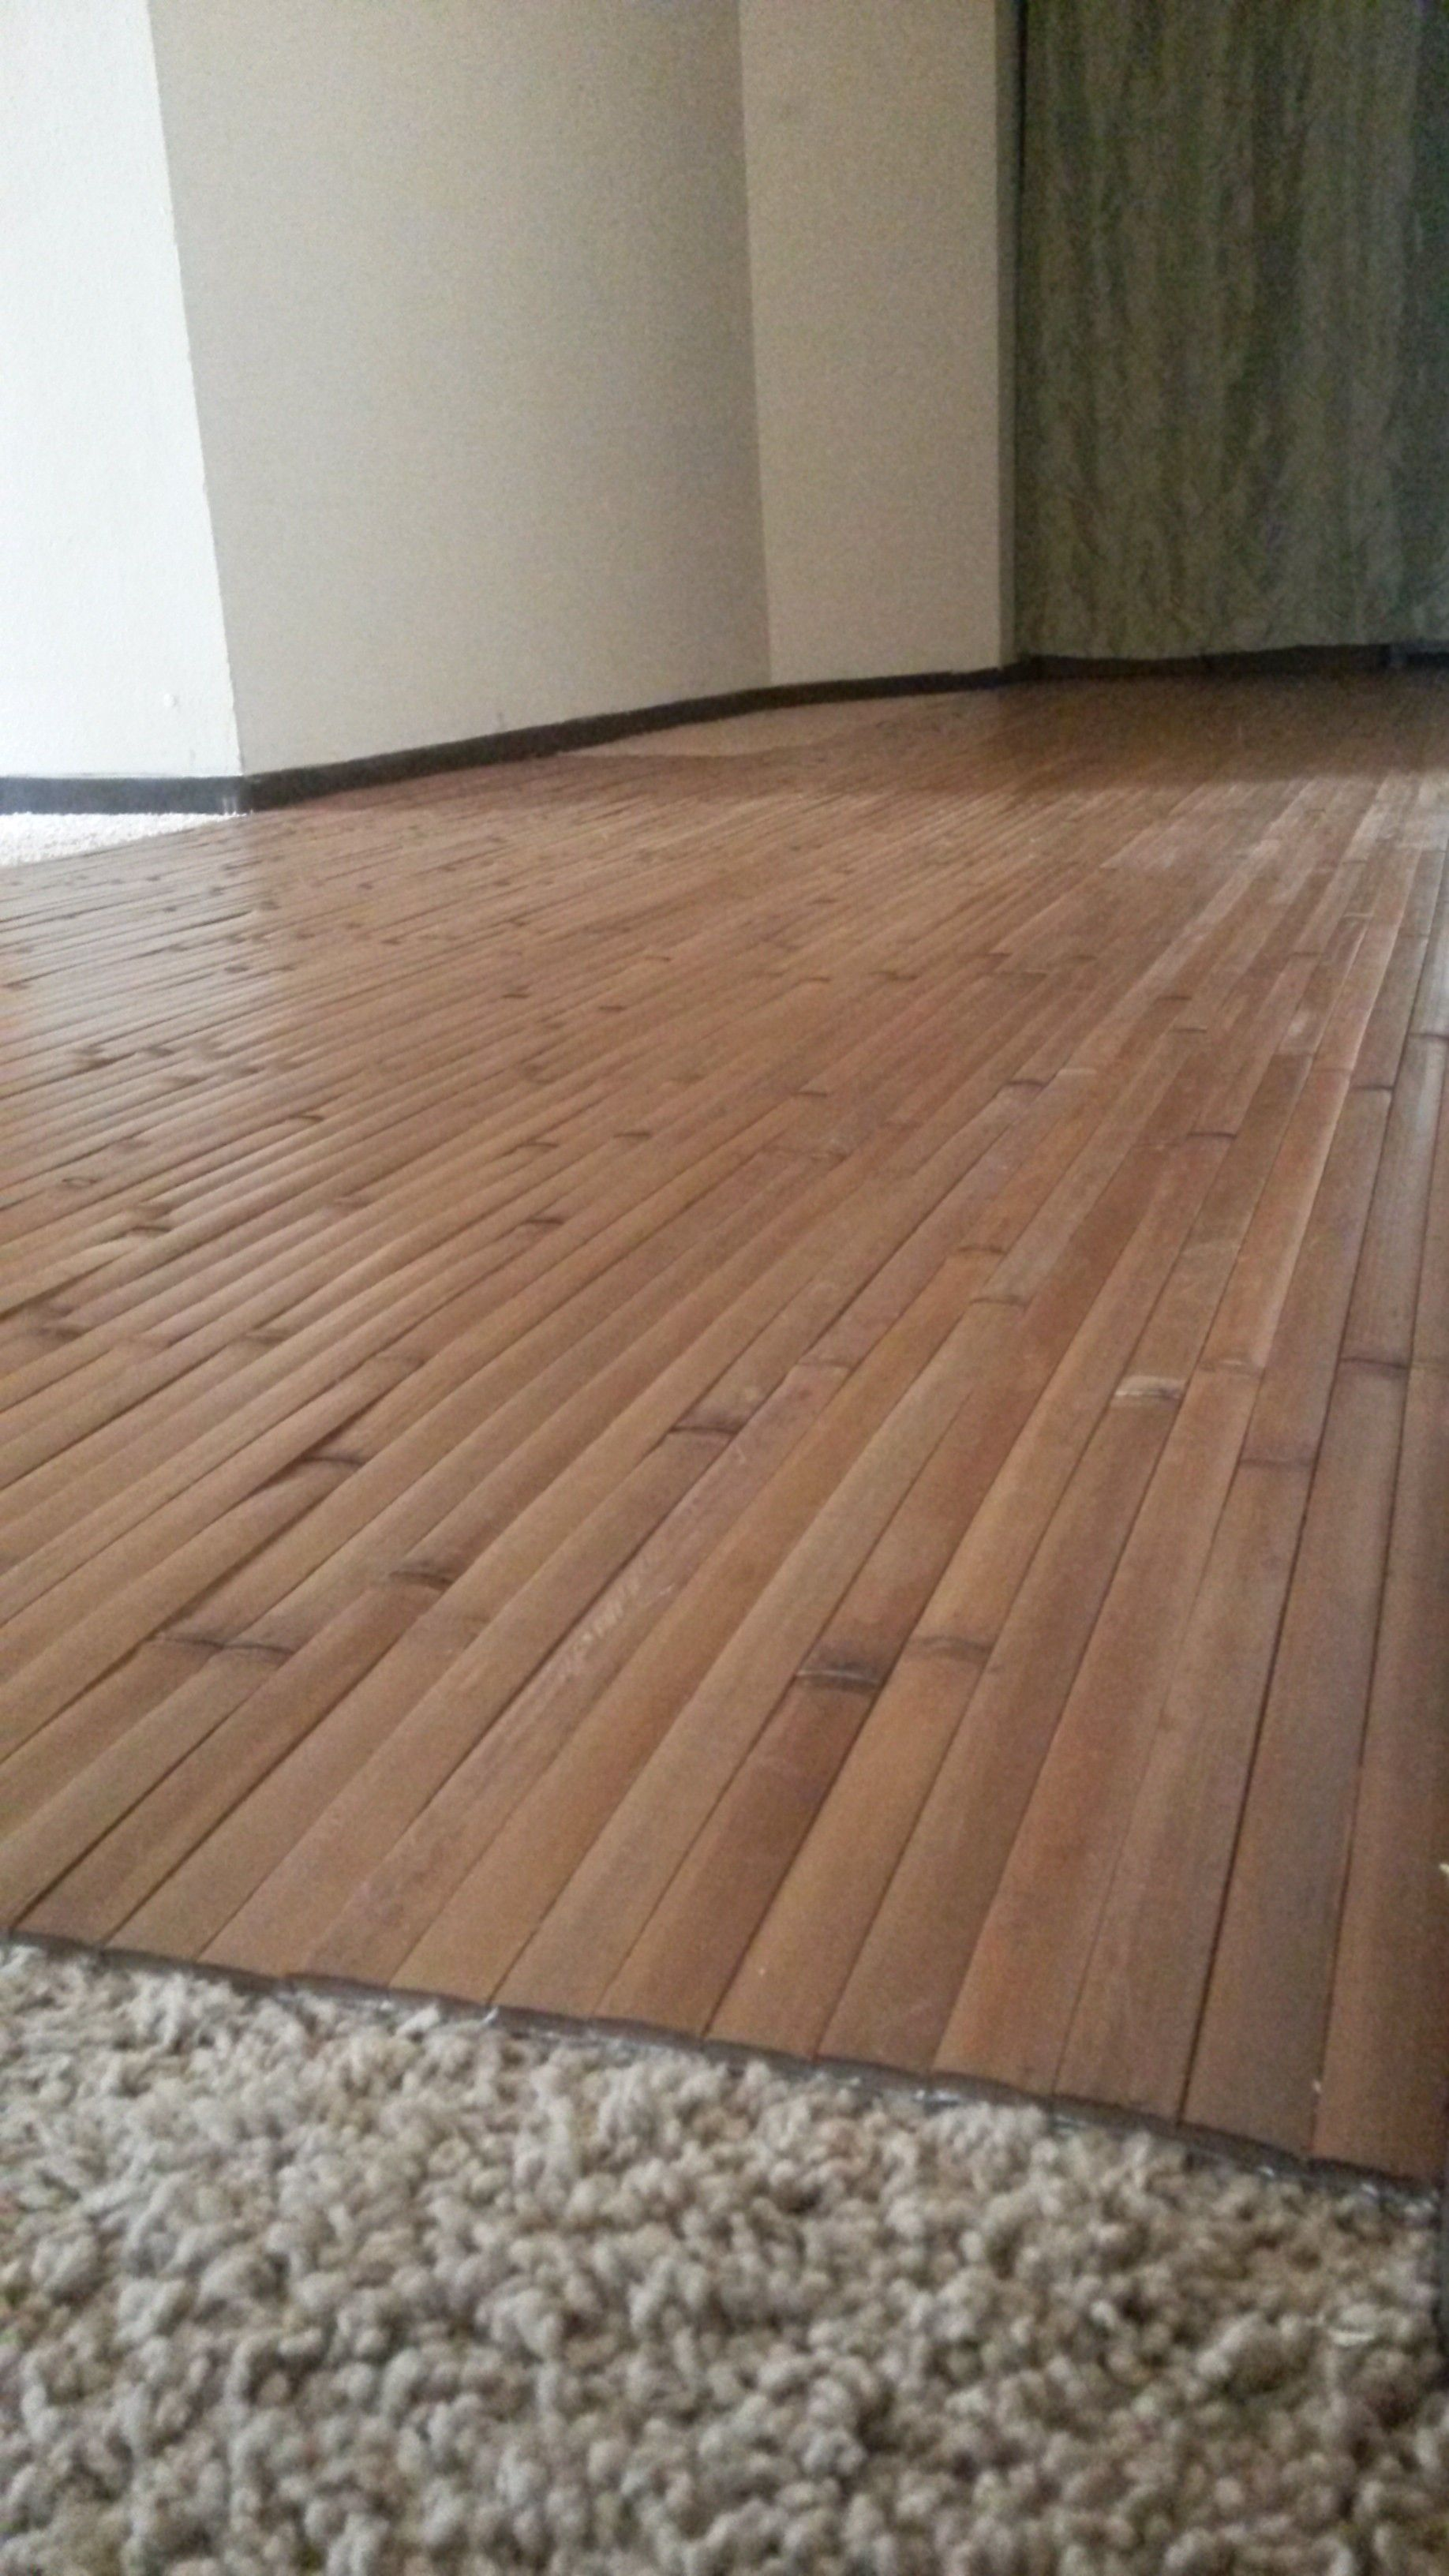 Temporary wood flooring over tile httpdreamhomesbyrob temporary wood flooring over tile dailygadgetfo Images